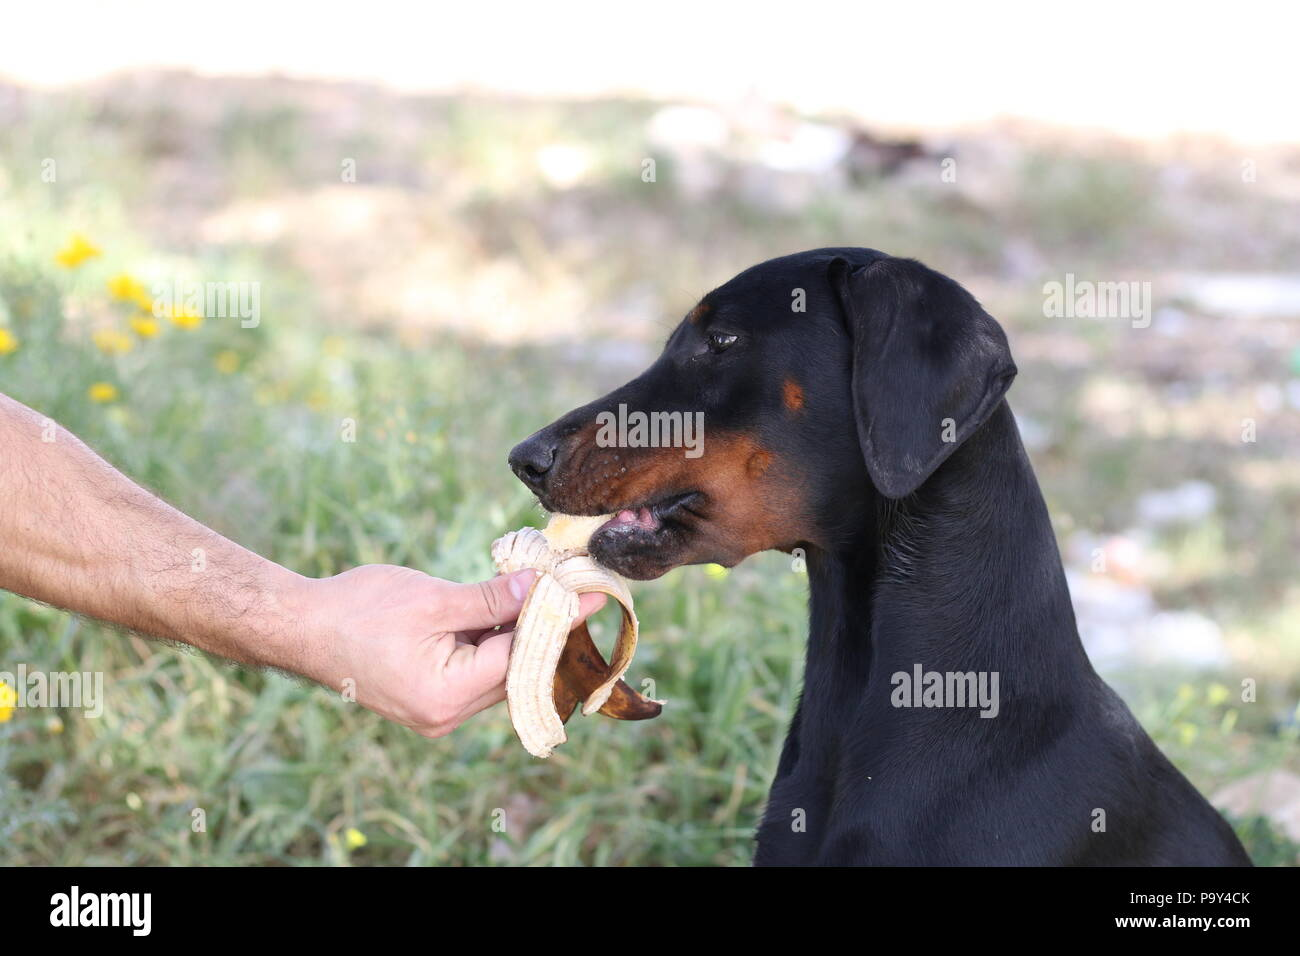 A dog is eating a banana from her ownr's hand - Stock Image